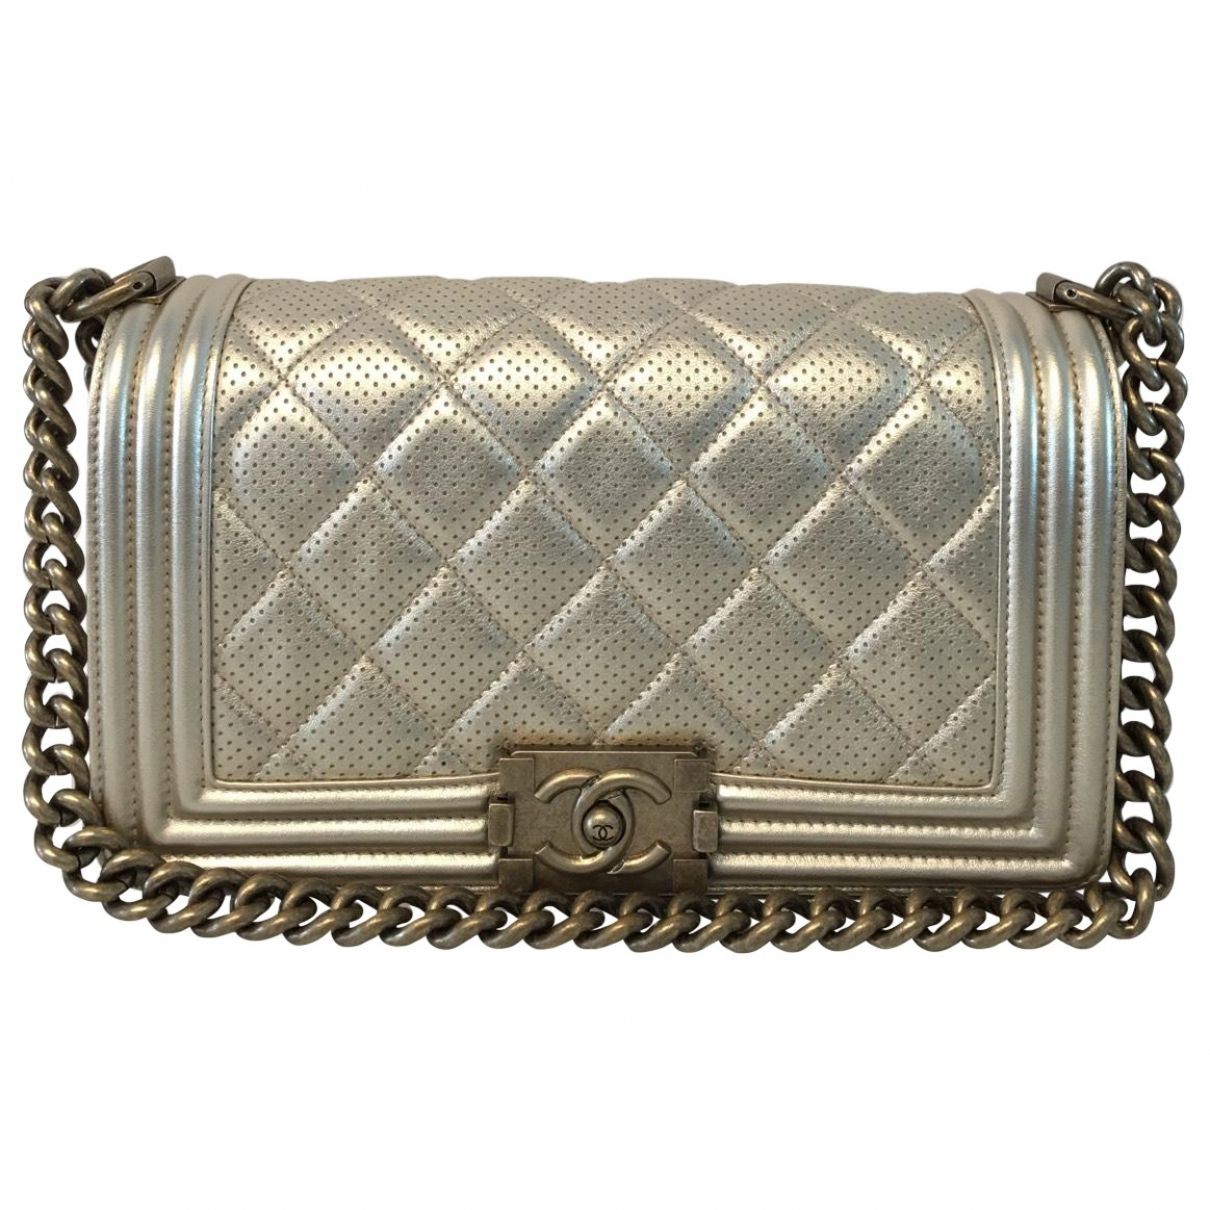 c48f78b36170 Chanel Metallic Boy Bag Perforated Leather | Vestiaire Collective ...